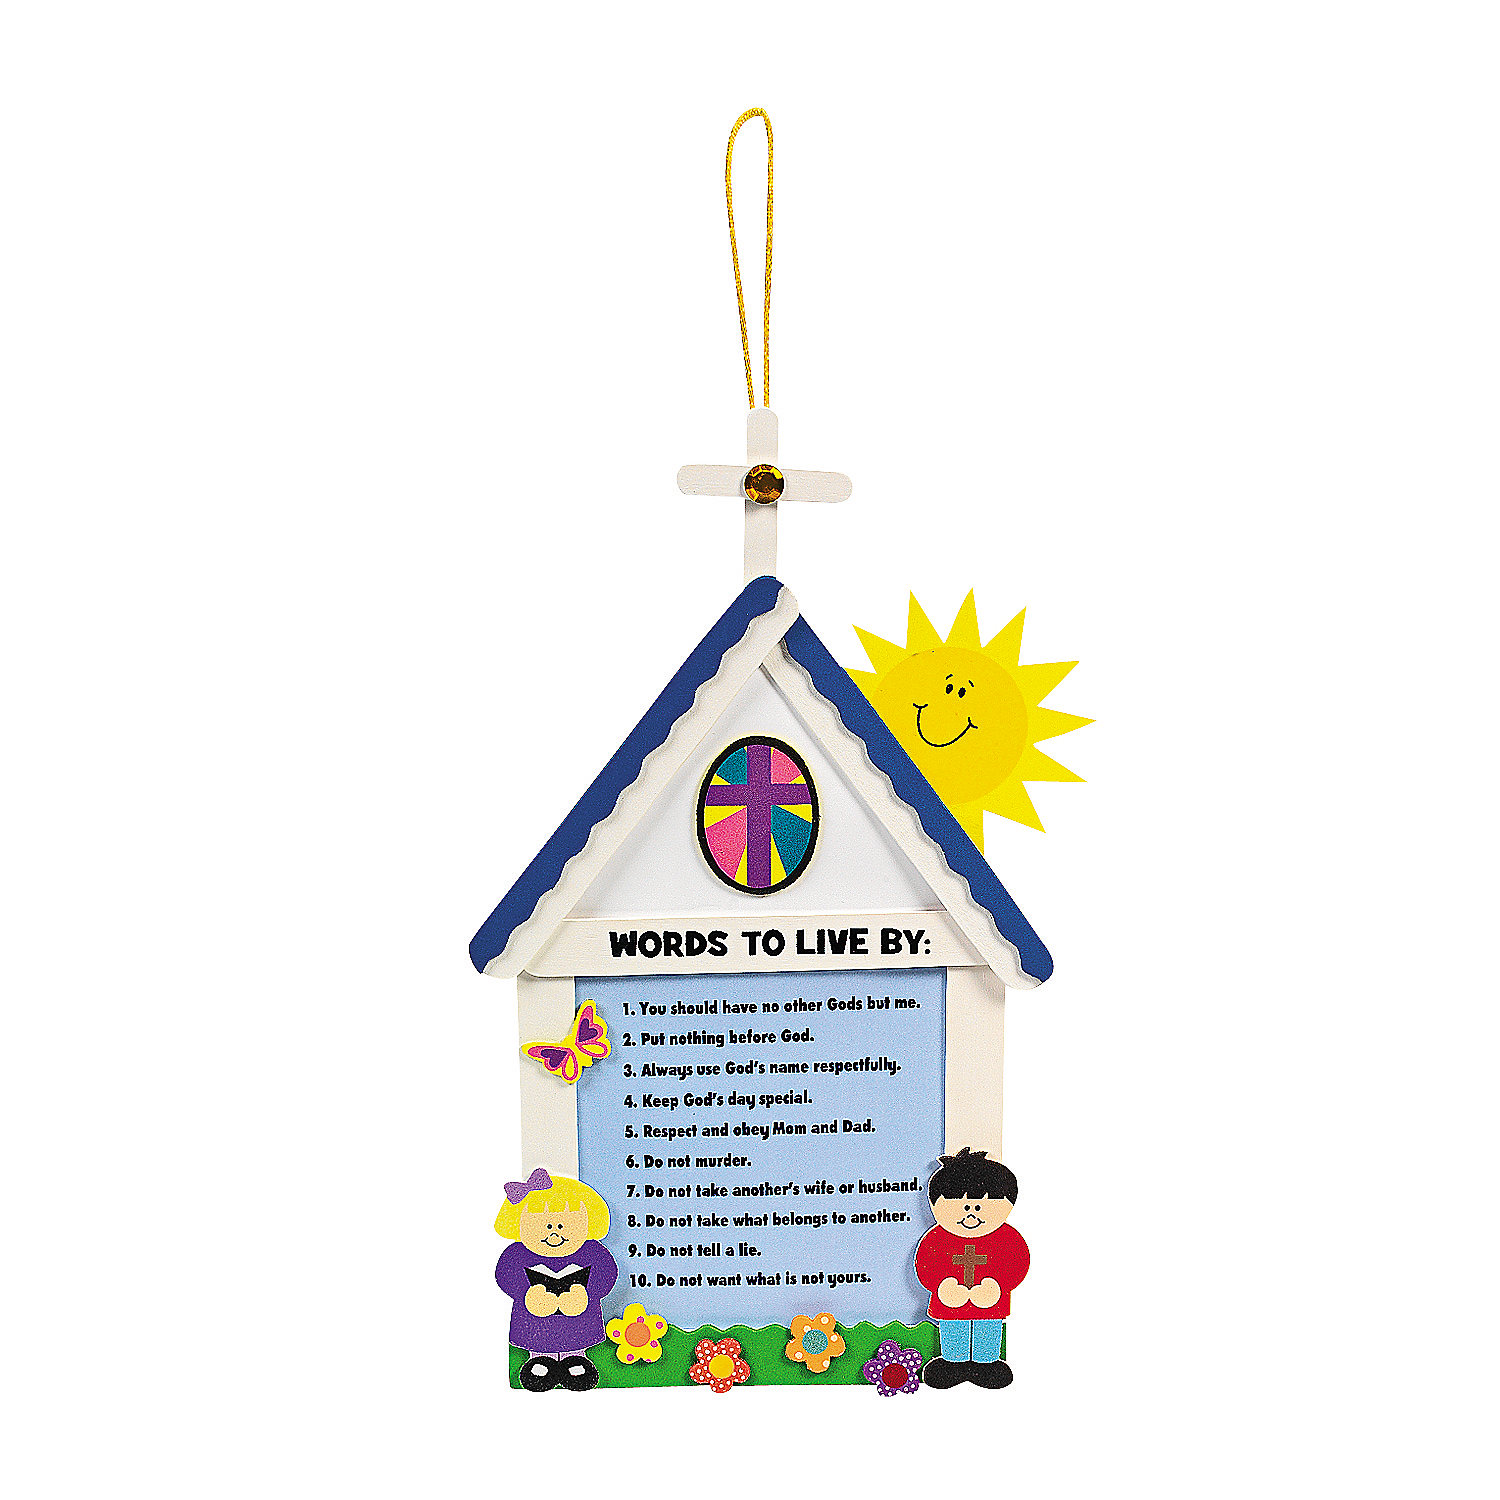 10 commandments for kids craft kit   oriental trading